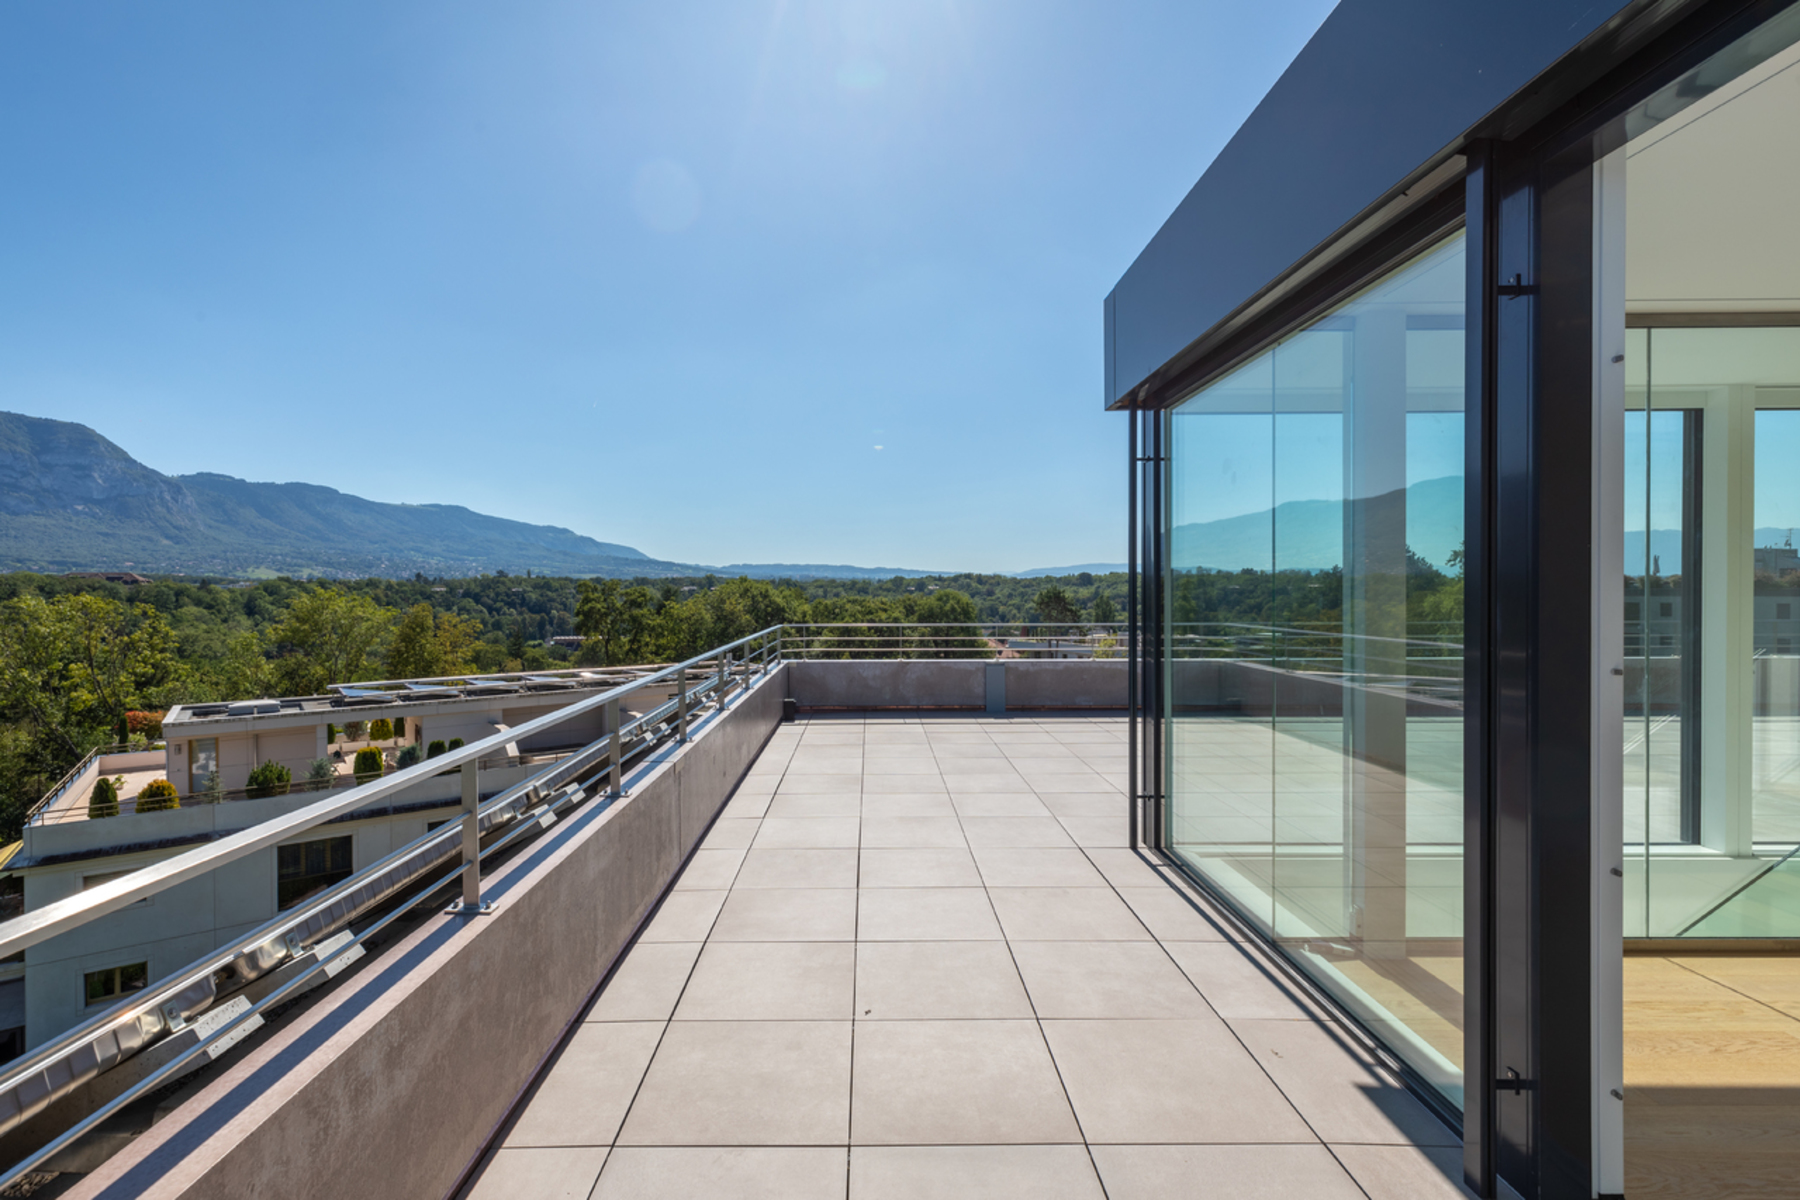 Apartments のために 売買 アット Splendid new penthouse in a quiet area Genève ジュネーブ, ジュネーブ 1206 スイス